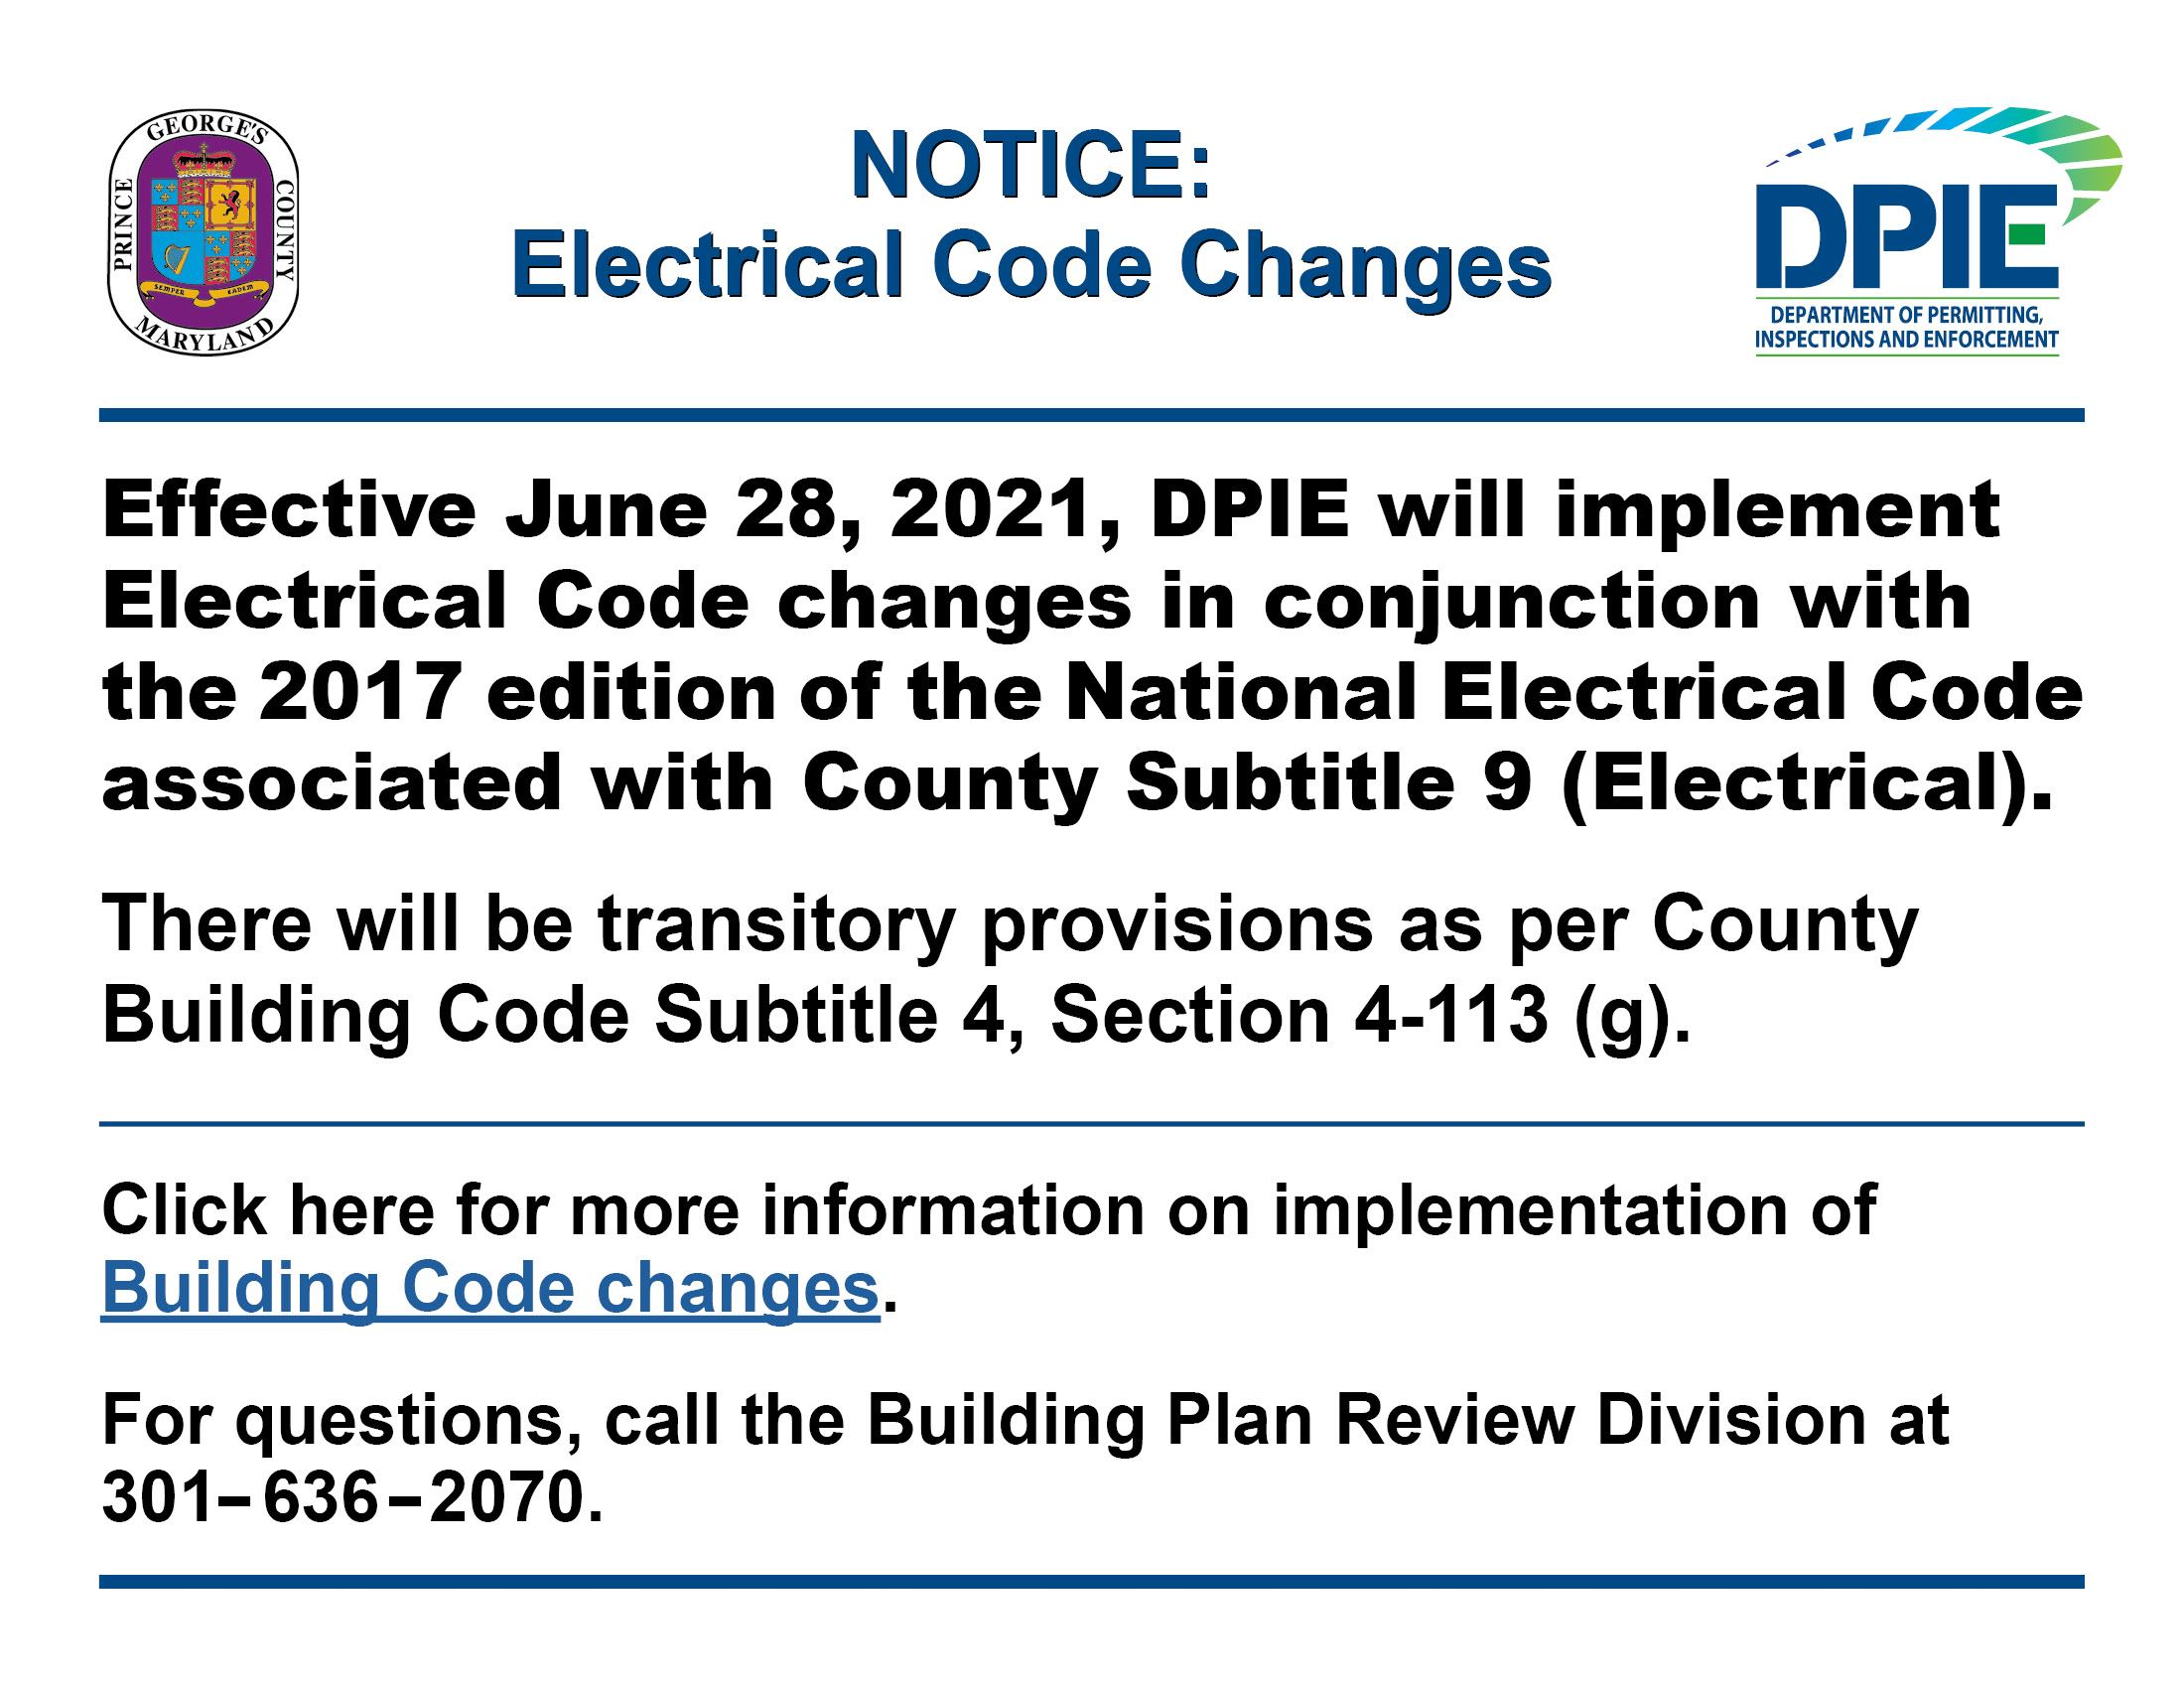 Notice - Electrical Code Changes  June 2021